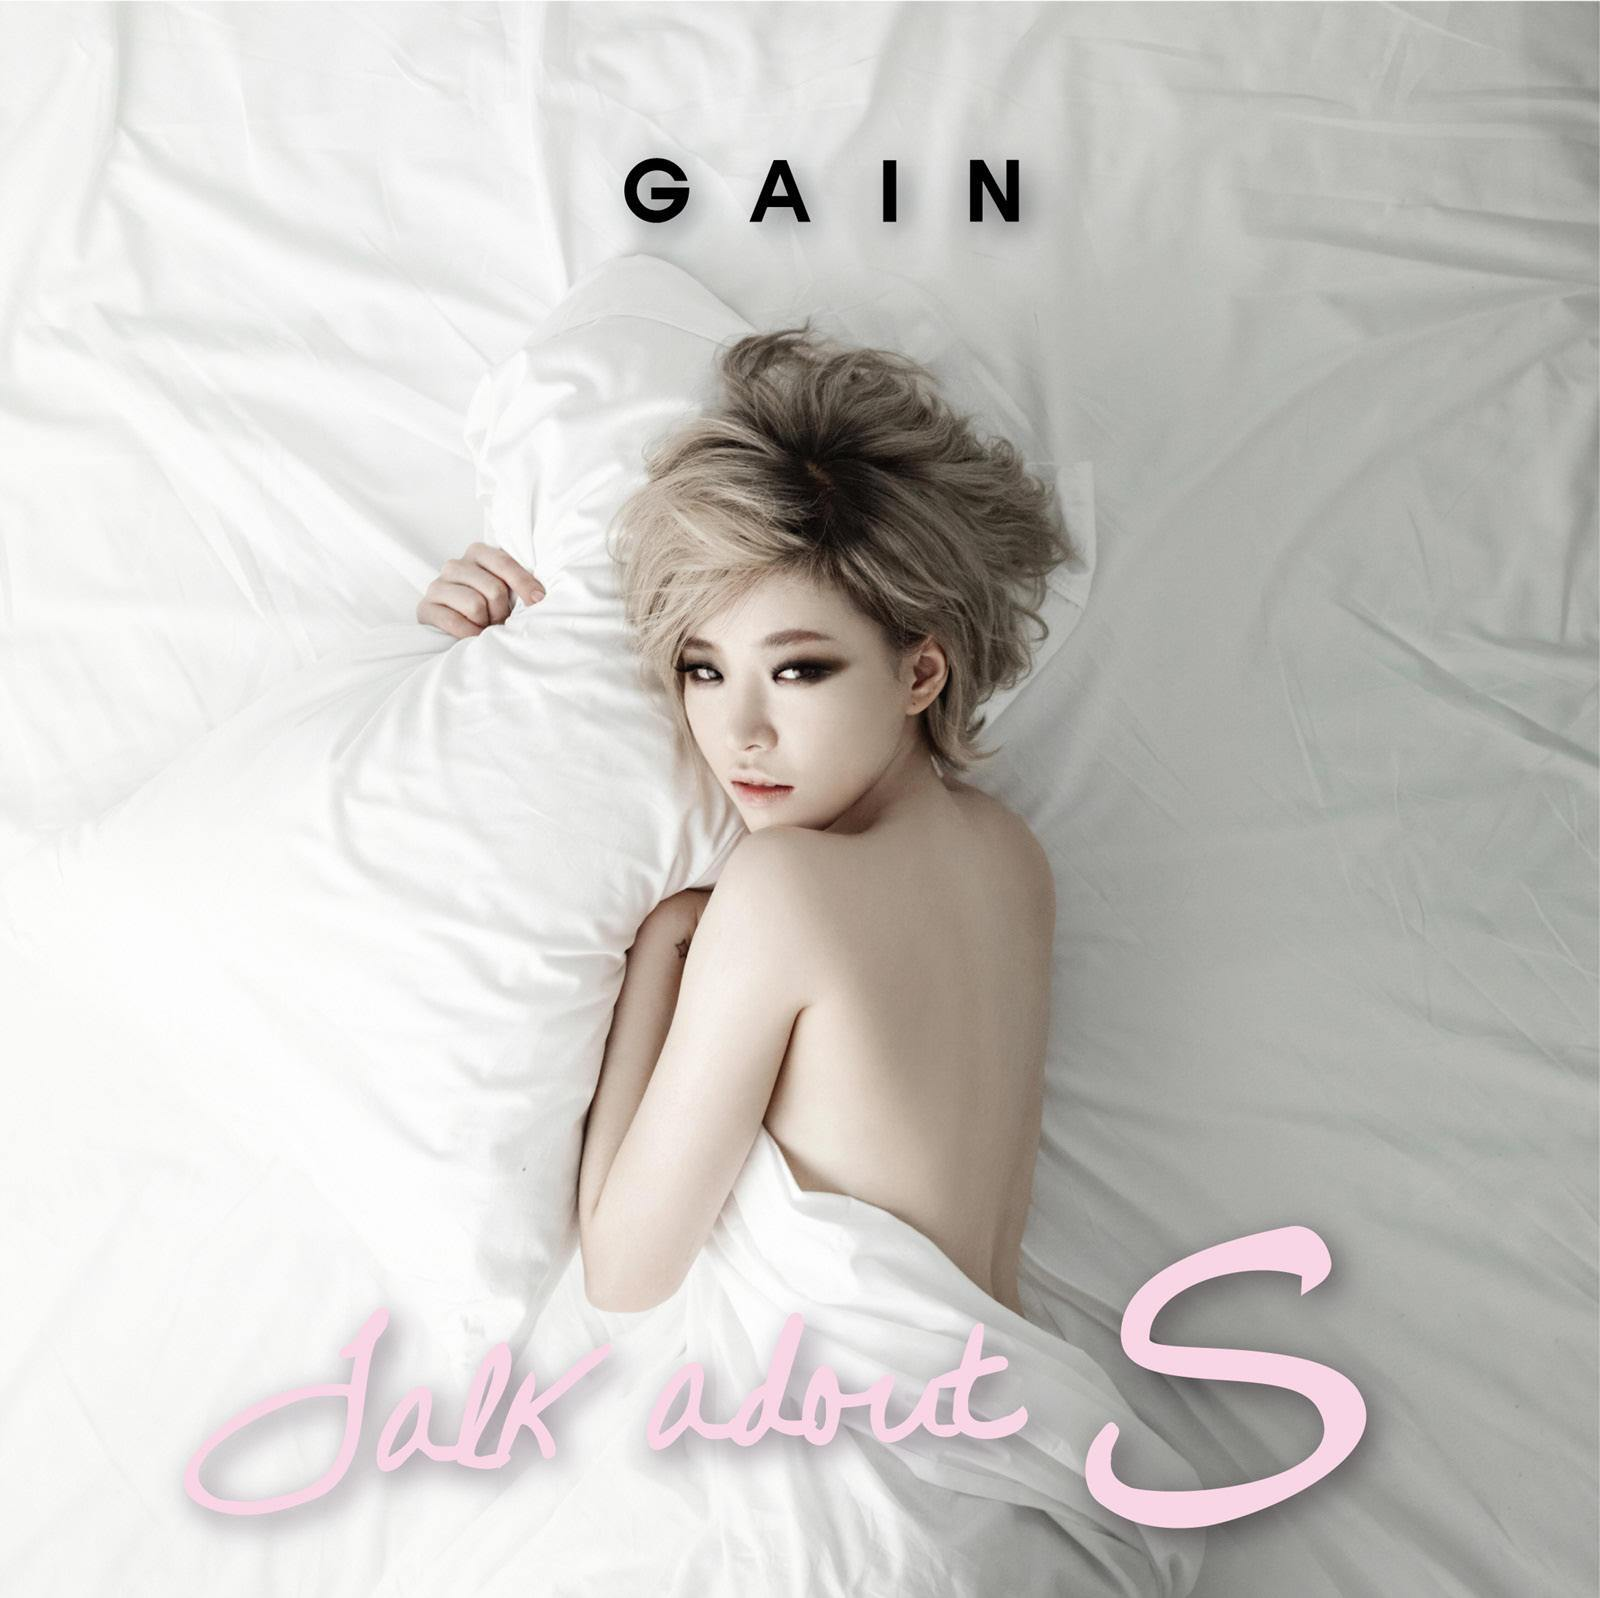 [Mini Album] GaIn   Talk About S.